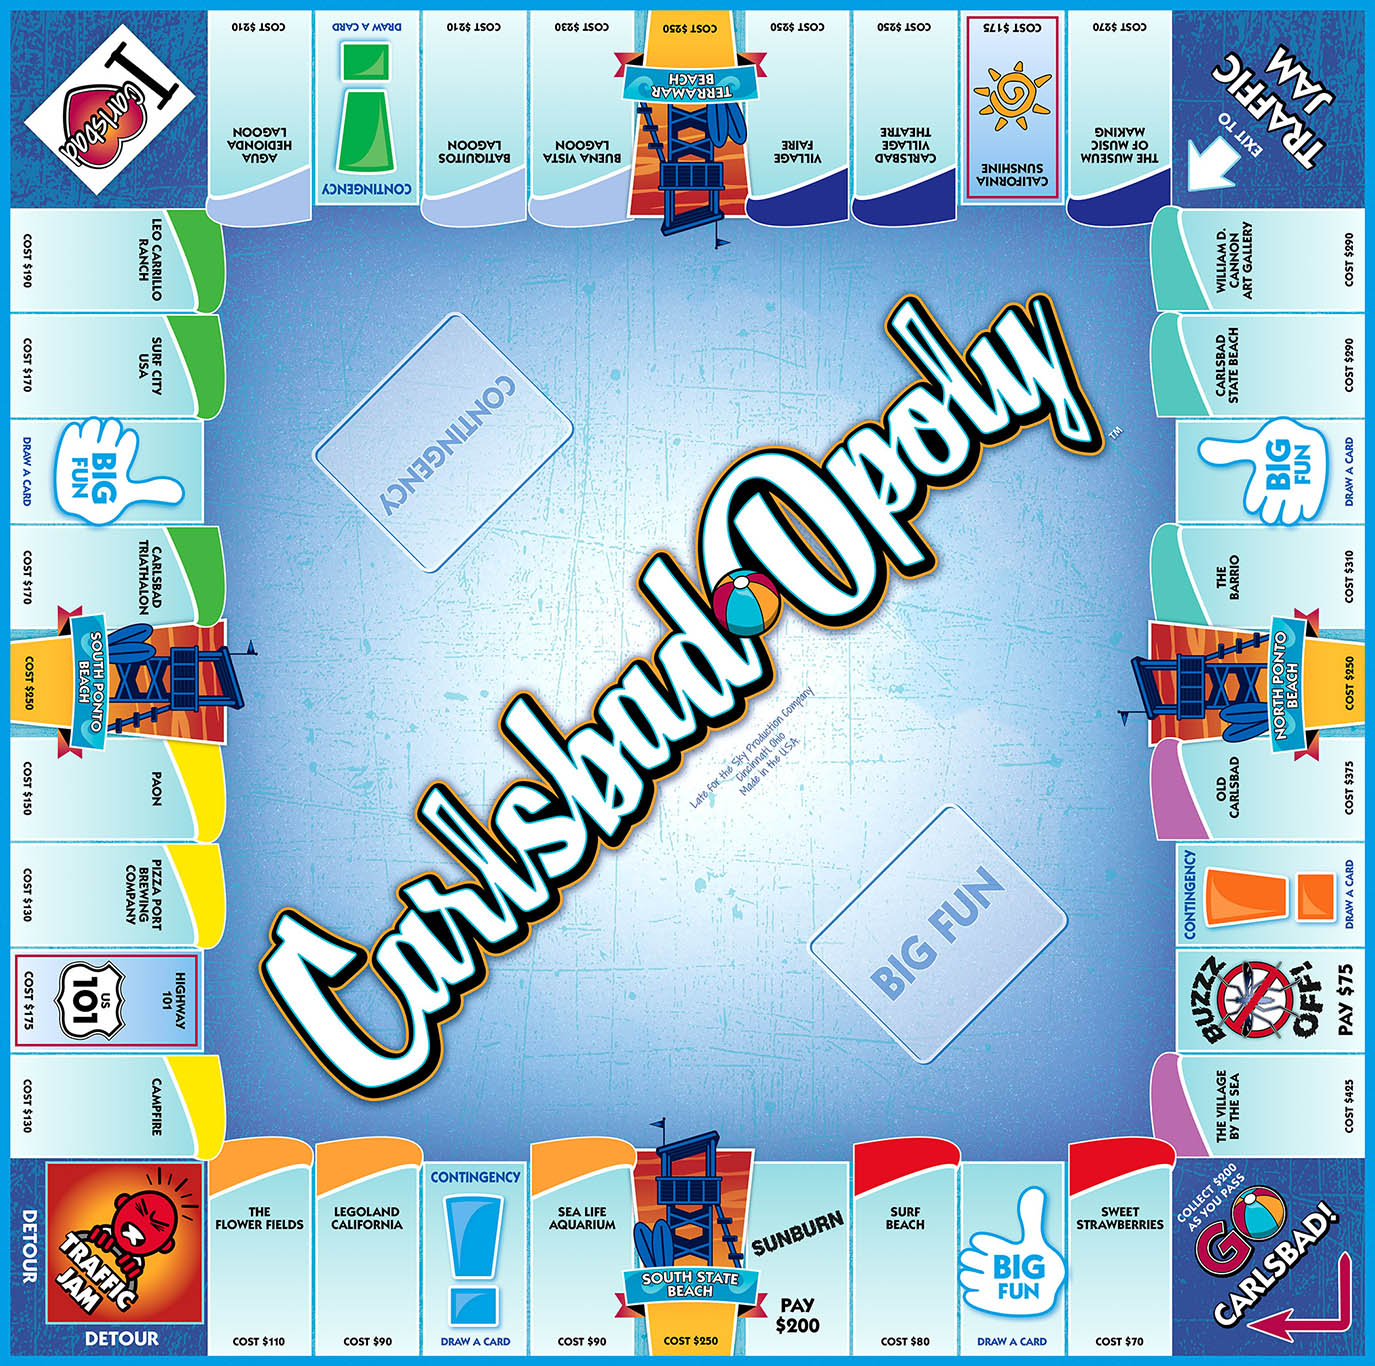 CARLSBAD-OPOLY Board Game